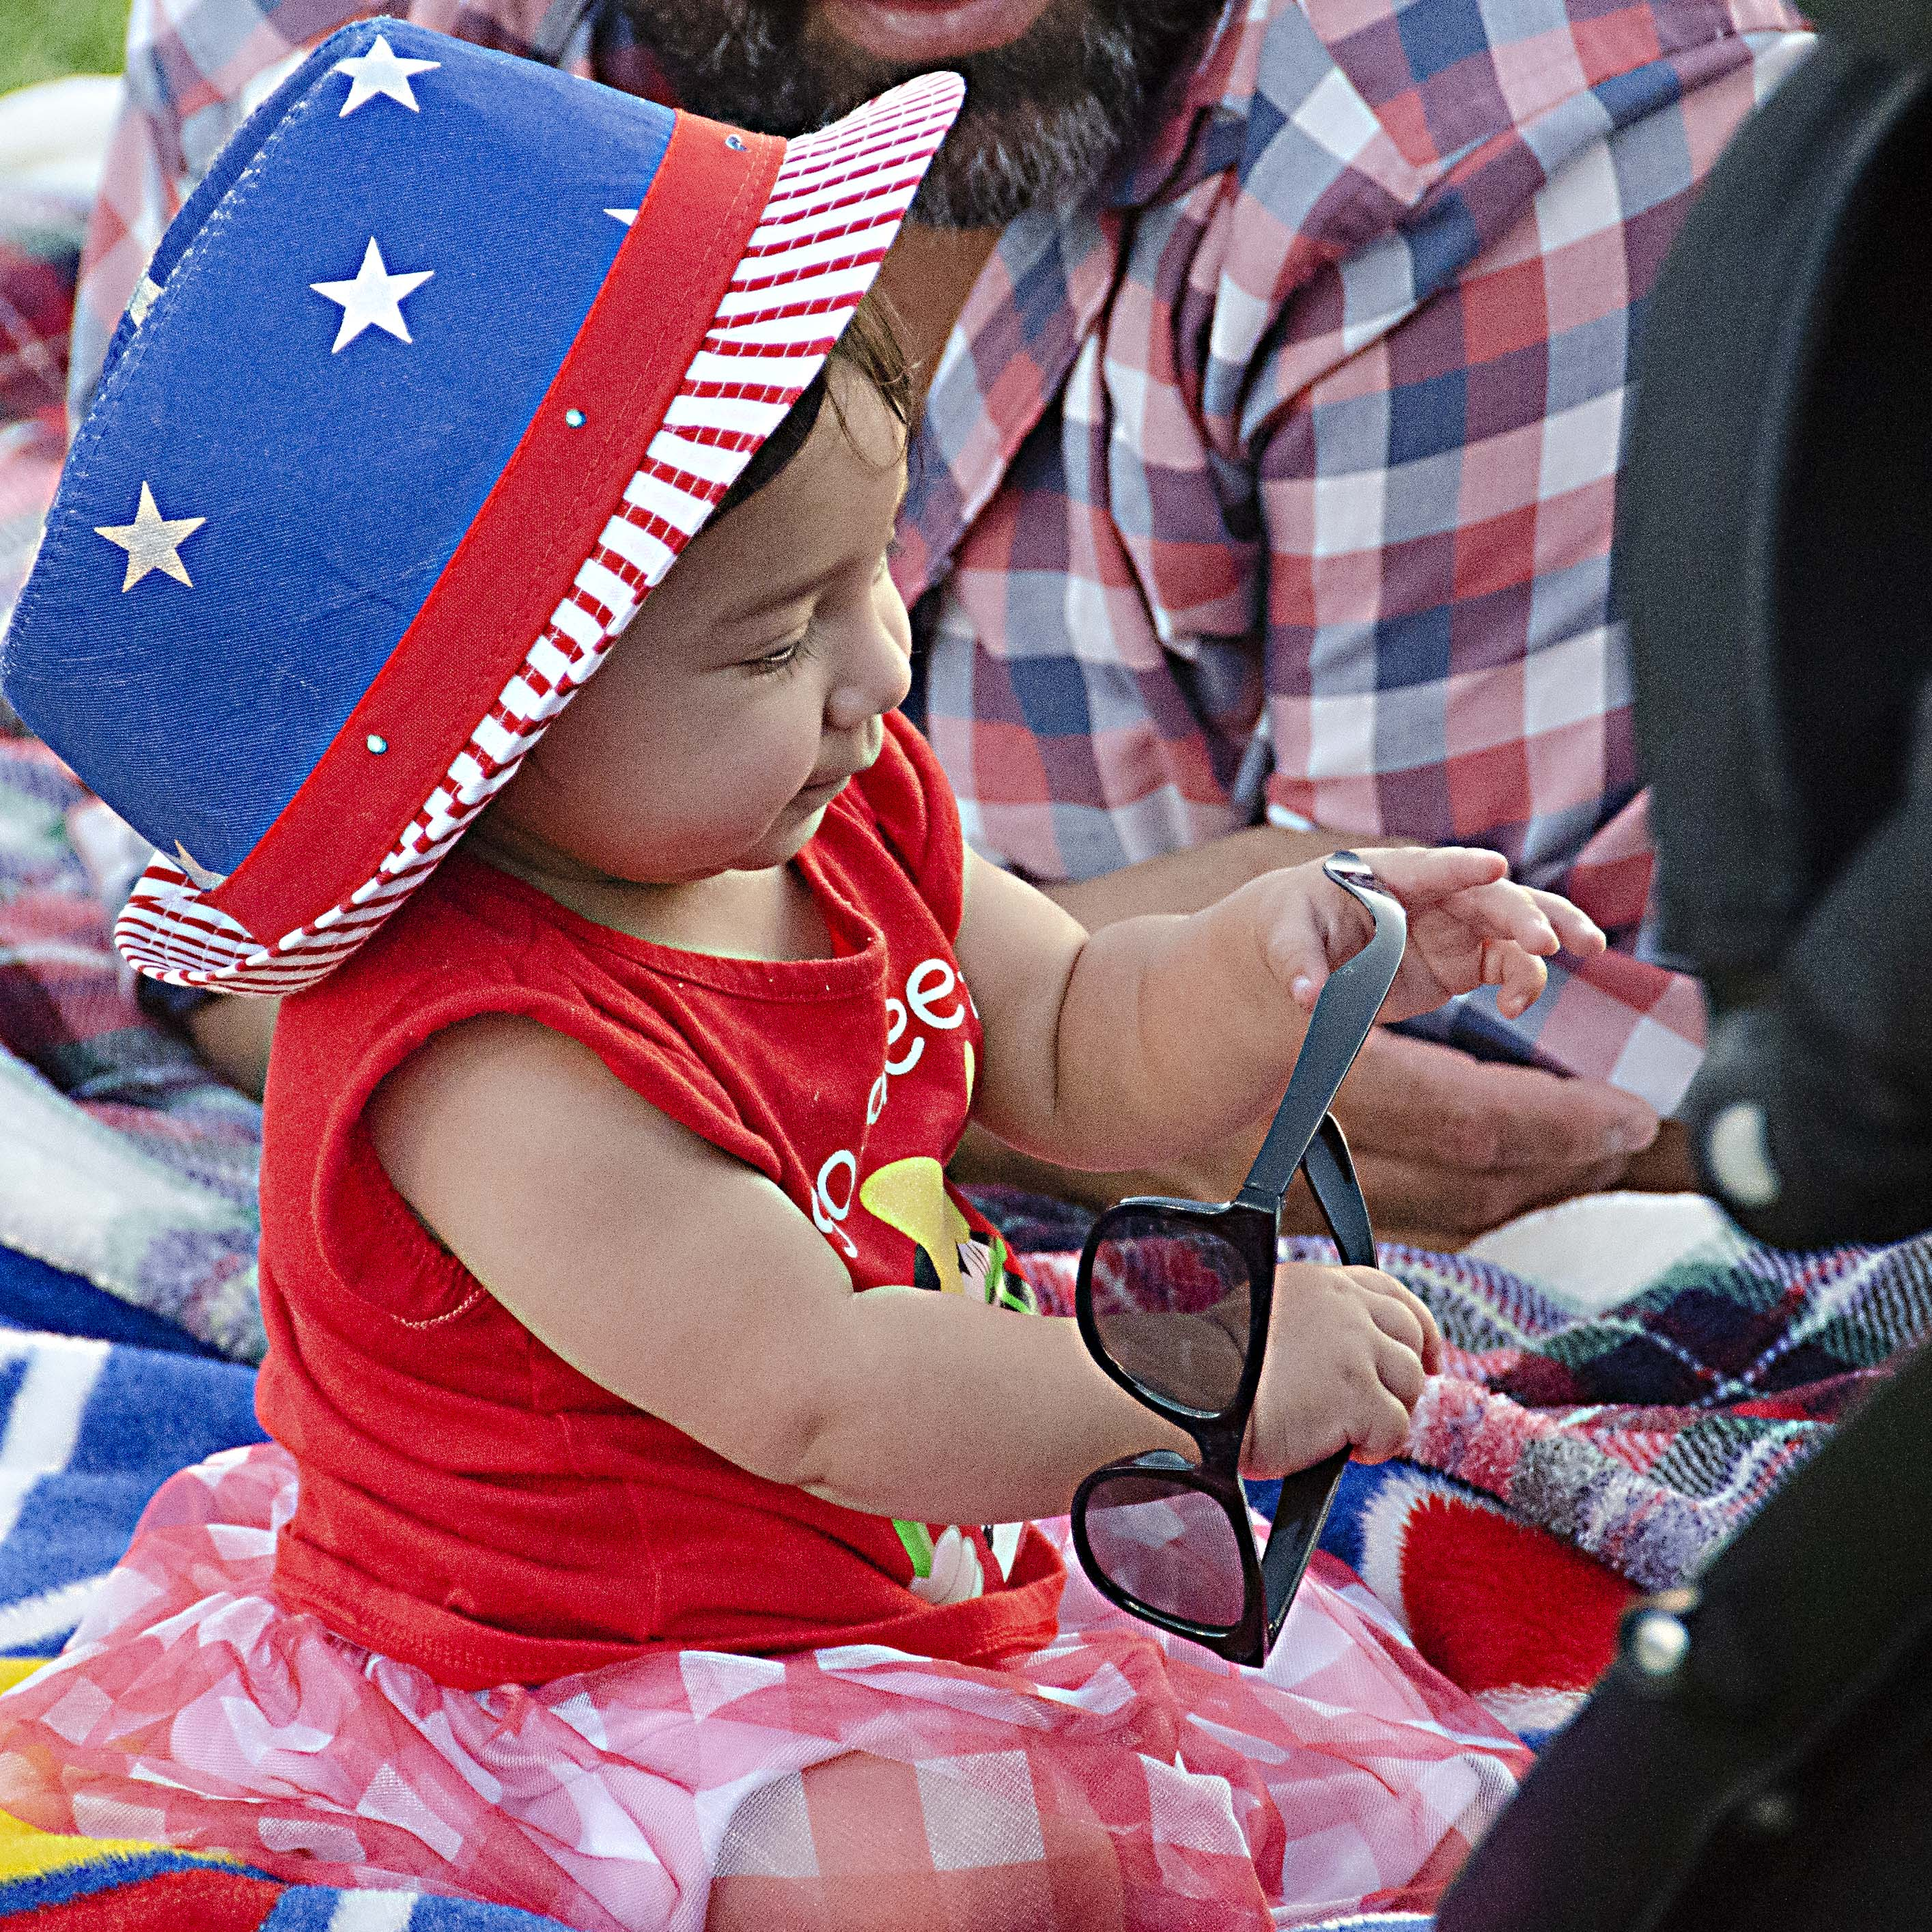 Members and helpers of the Ebenfeld Mennonite Brethren Church youth group take orders for bags of kettle corn at the Arts and Crafts fair. Hillsboro police chief Dan Kinning said between 35,000 and 40,000 were estimated to have attended the fair.